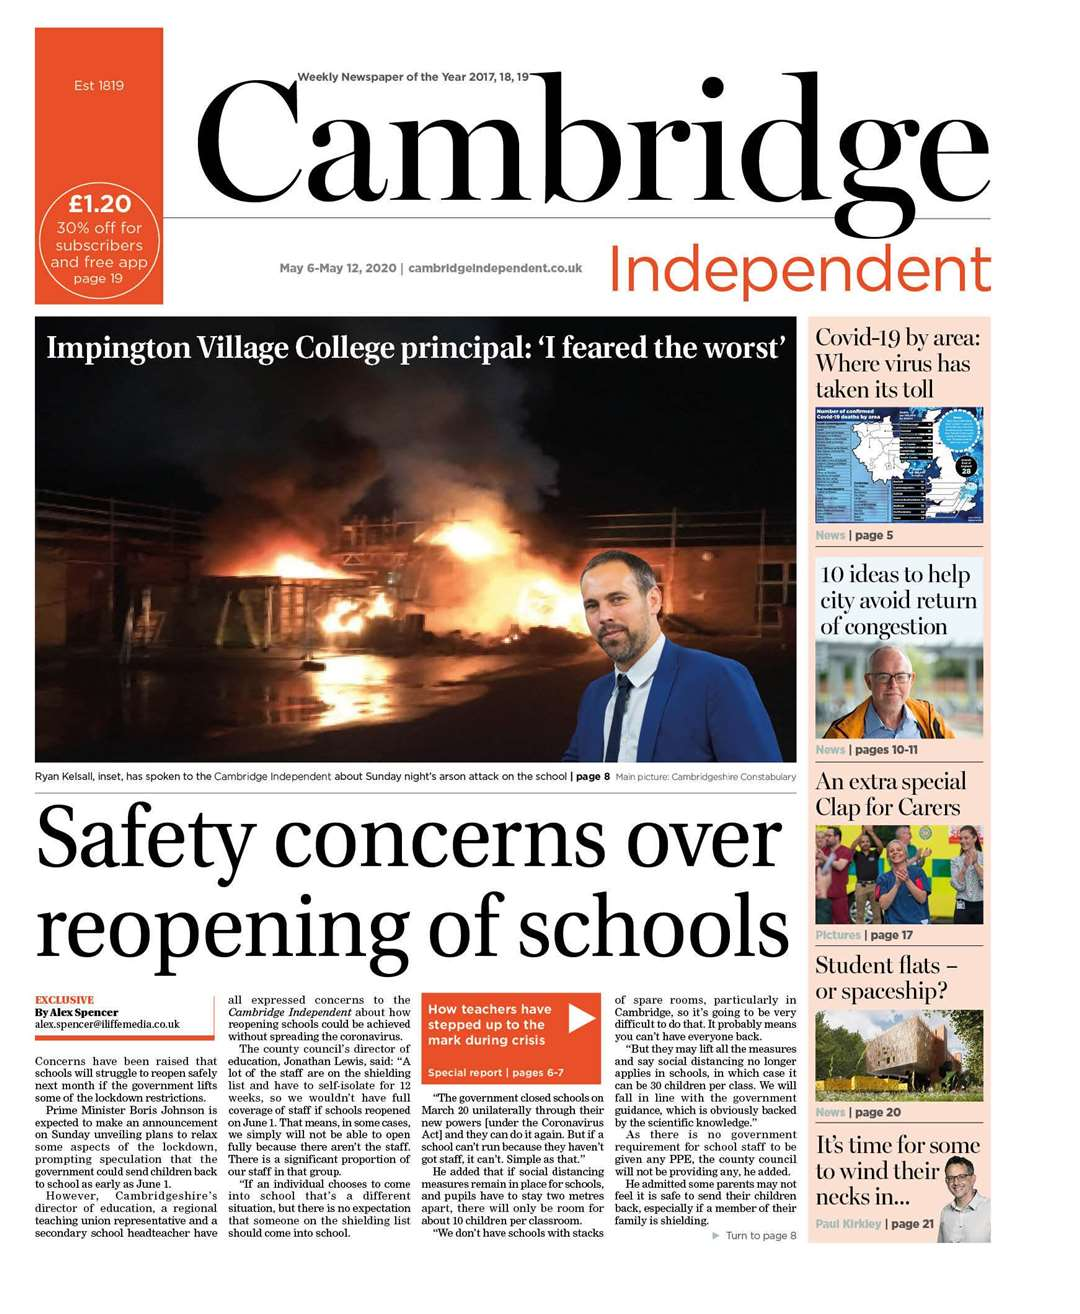 The Cambridge Independent front page of May 6-12 (34434526)